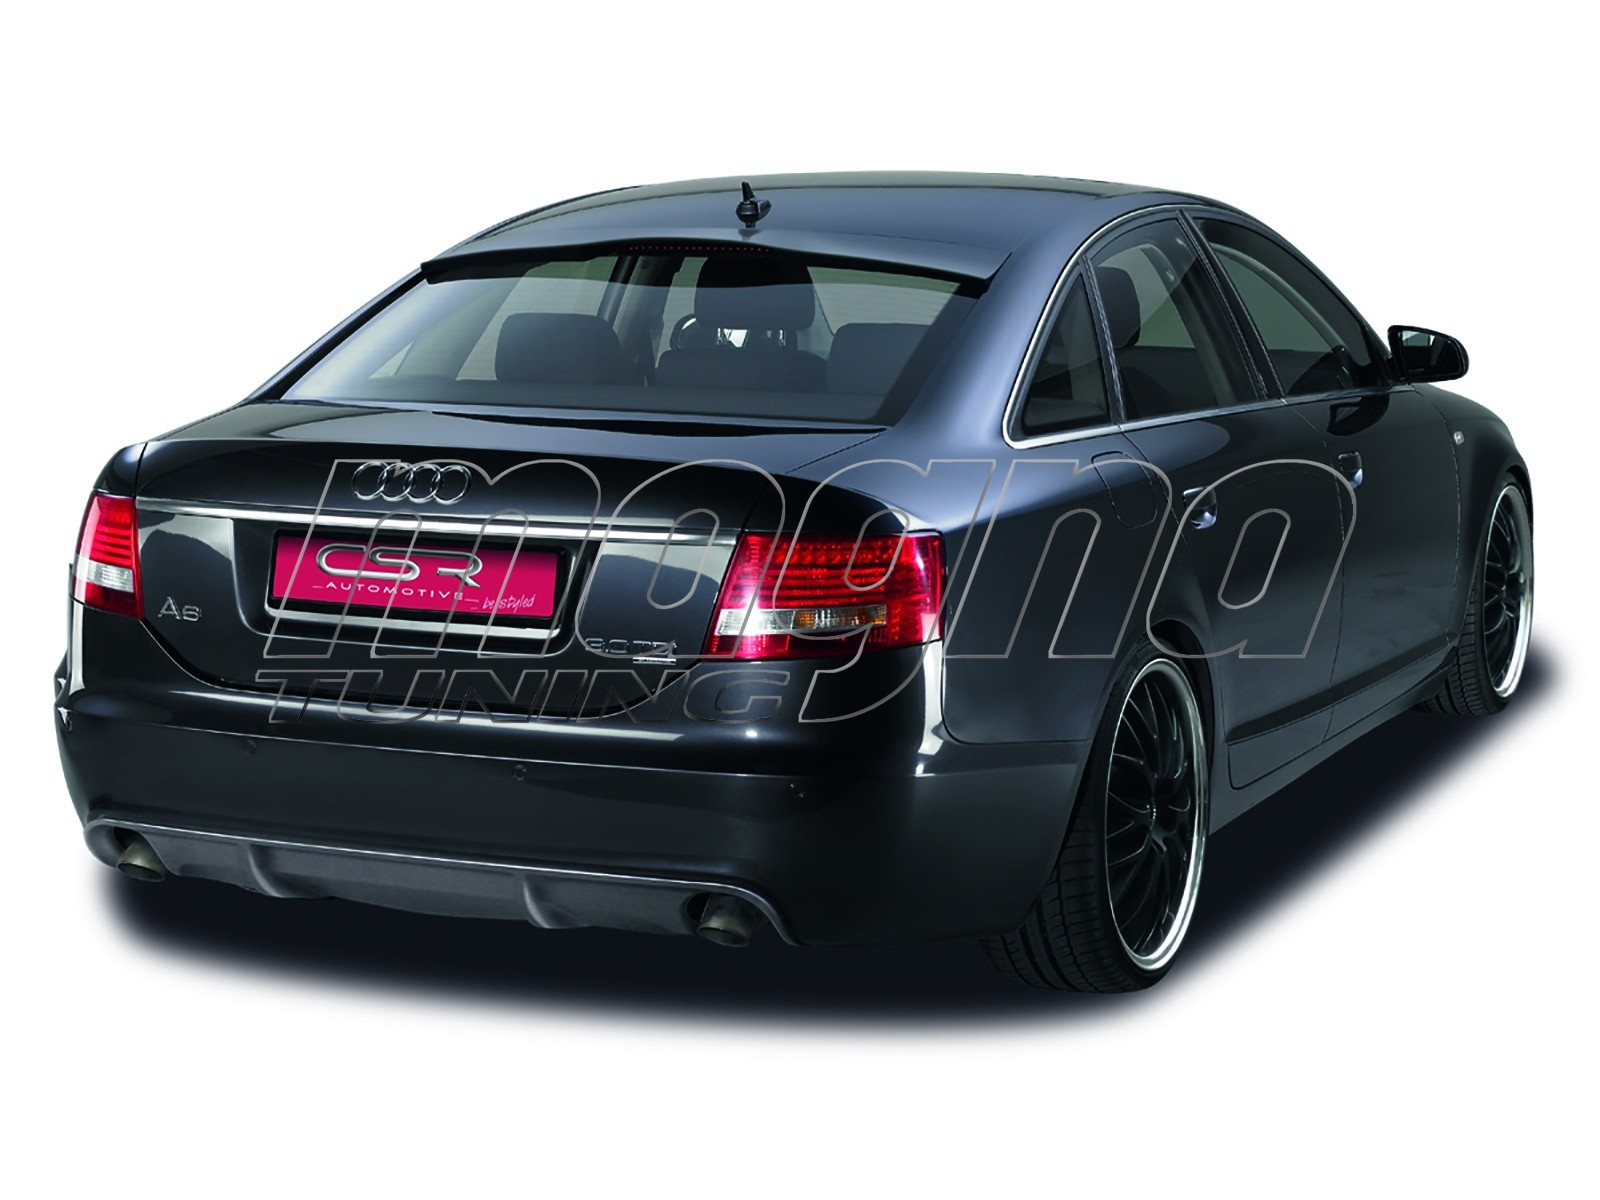 audi a6 c6 4f limousine sfx line rear bumper extension. Black Bedroom Furniture Sets. Home Design Ideas